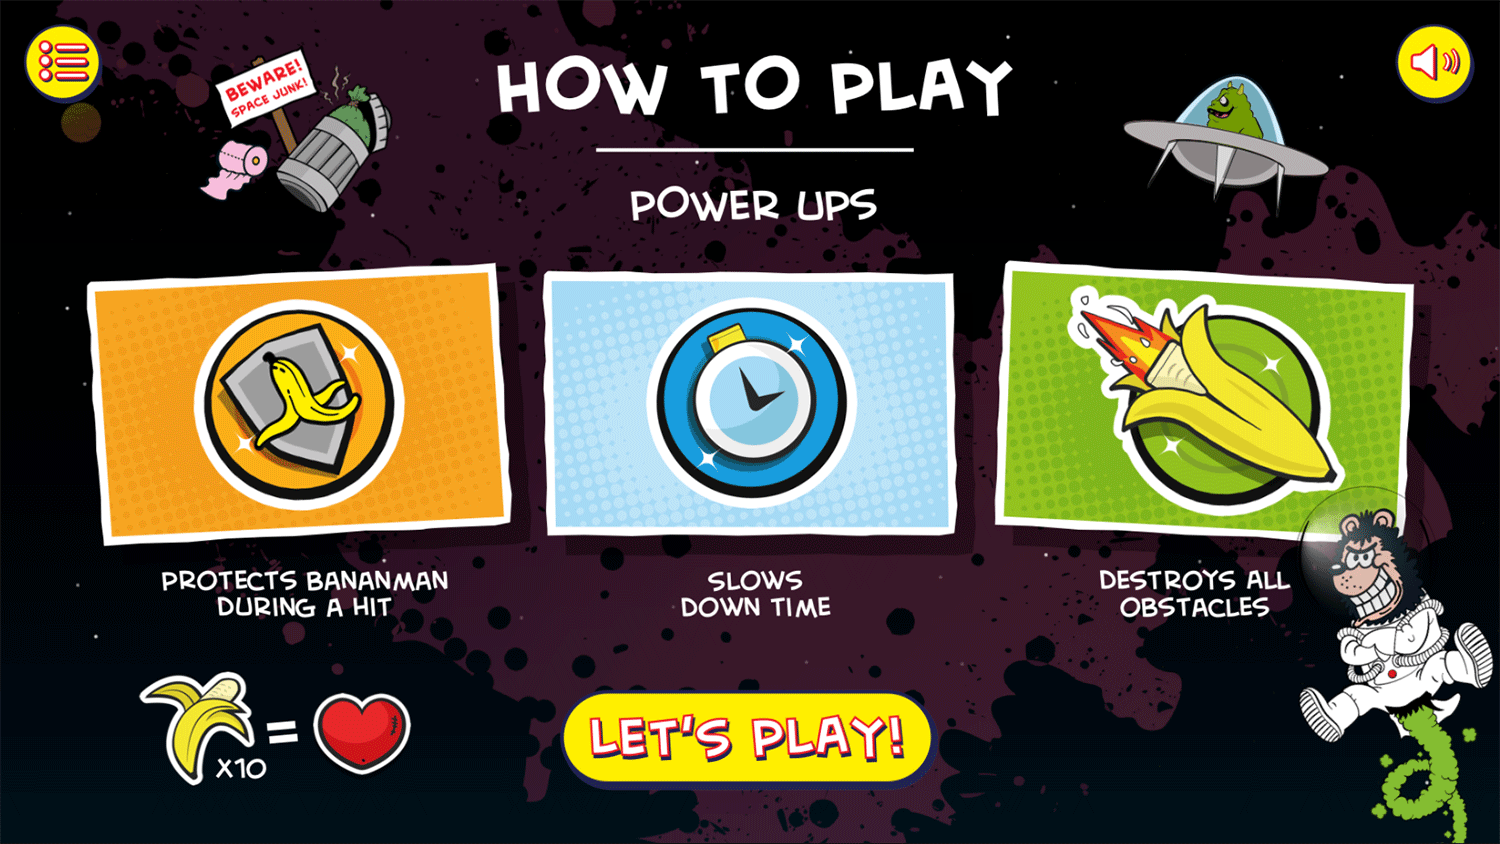 Bananaman Chase in Space Game Instructions Screenshot.